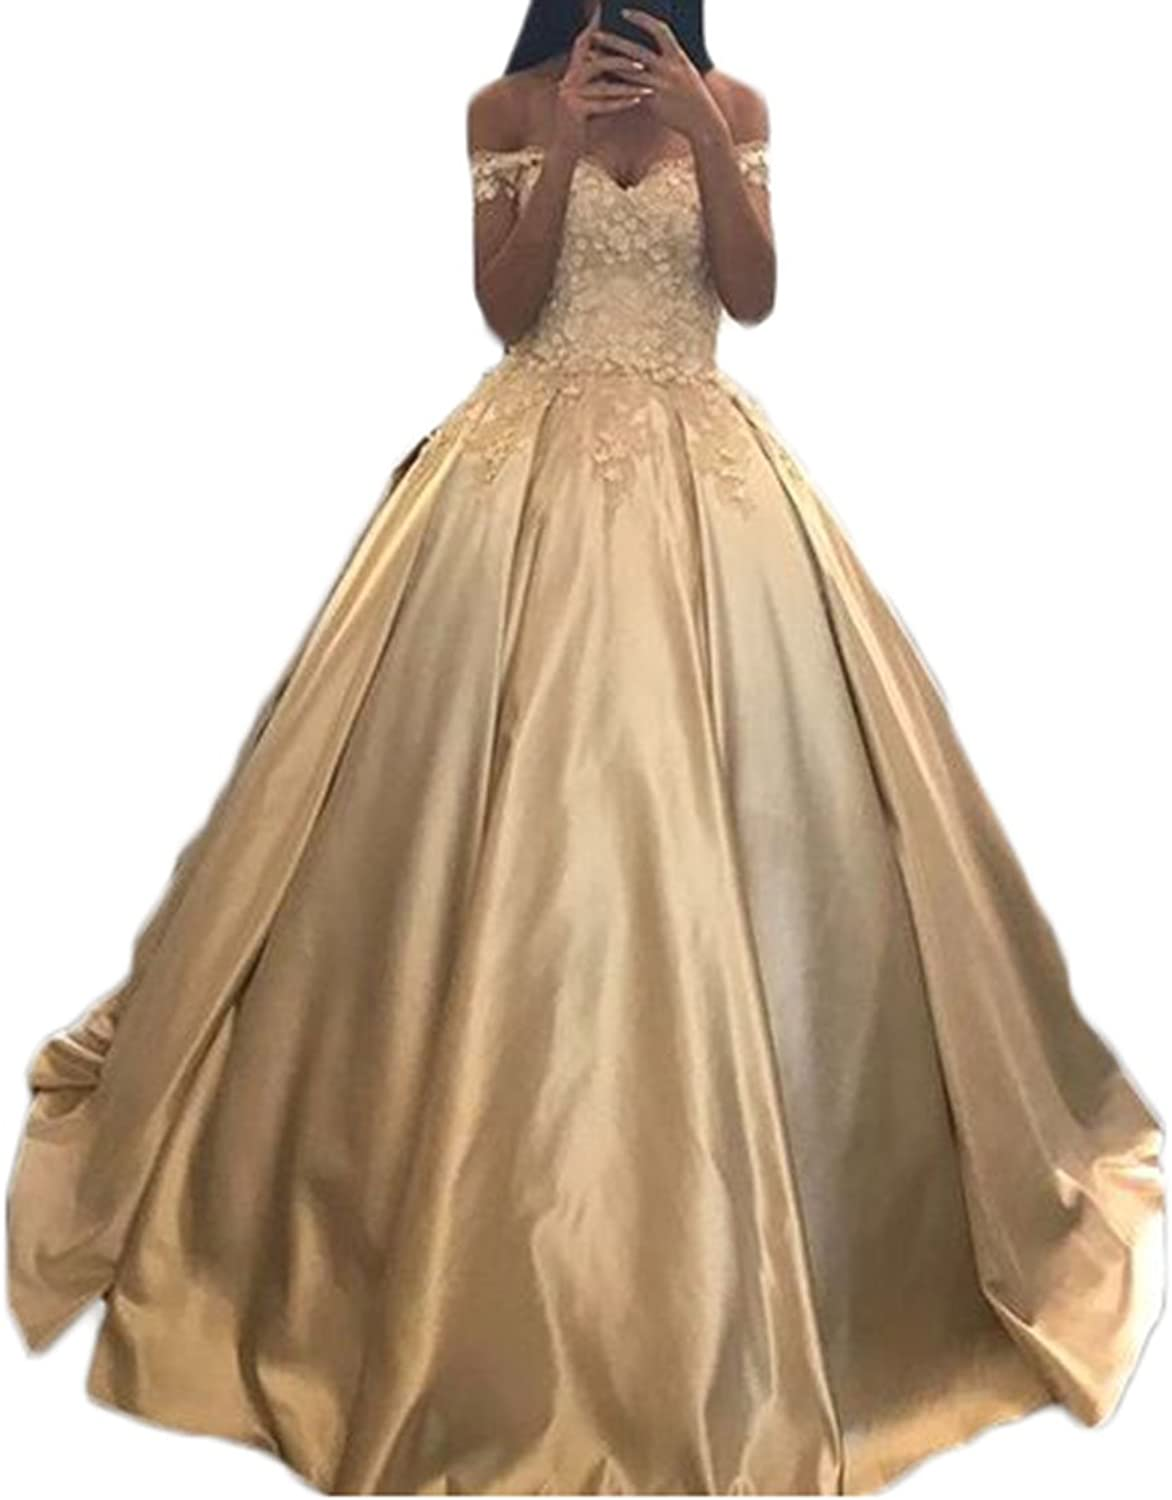 Alilith.Z 2018 Princess Champagne Quinceanera Dresses Sexy Off The Shoulder Flower Appliques Prom Dresses for Women Ball Gown